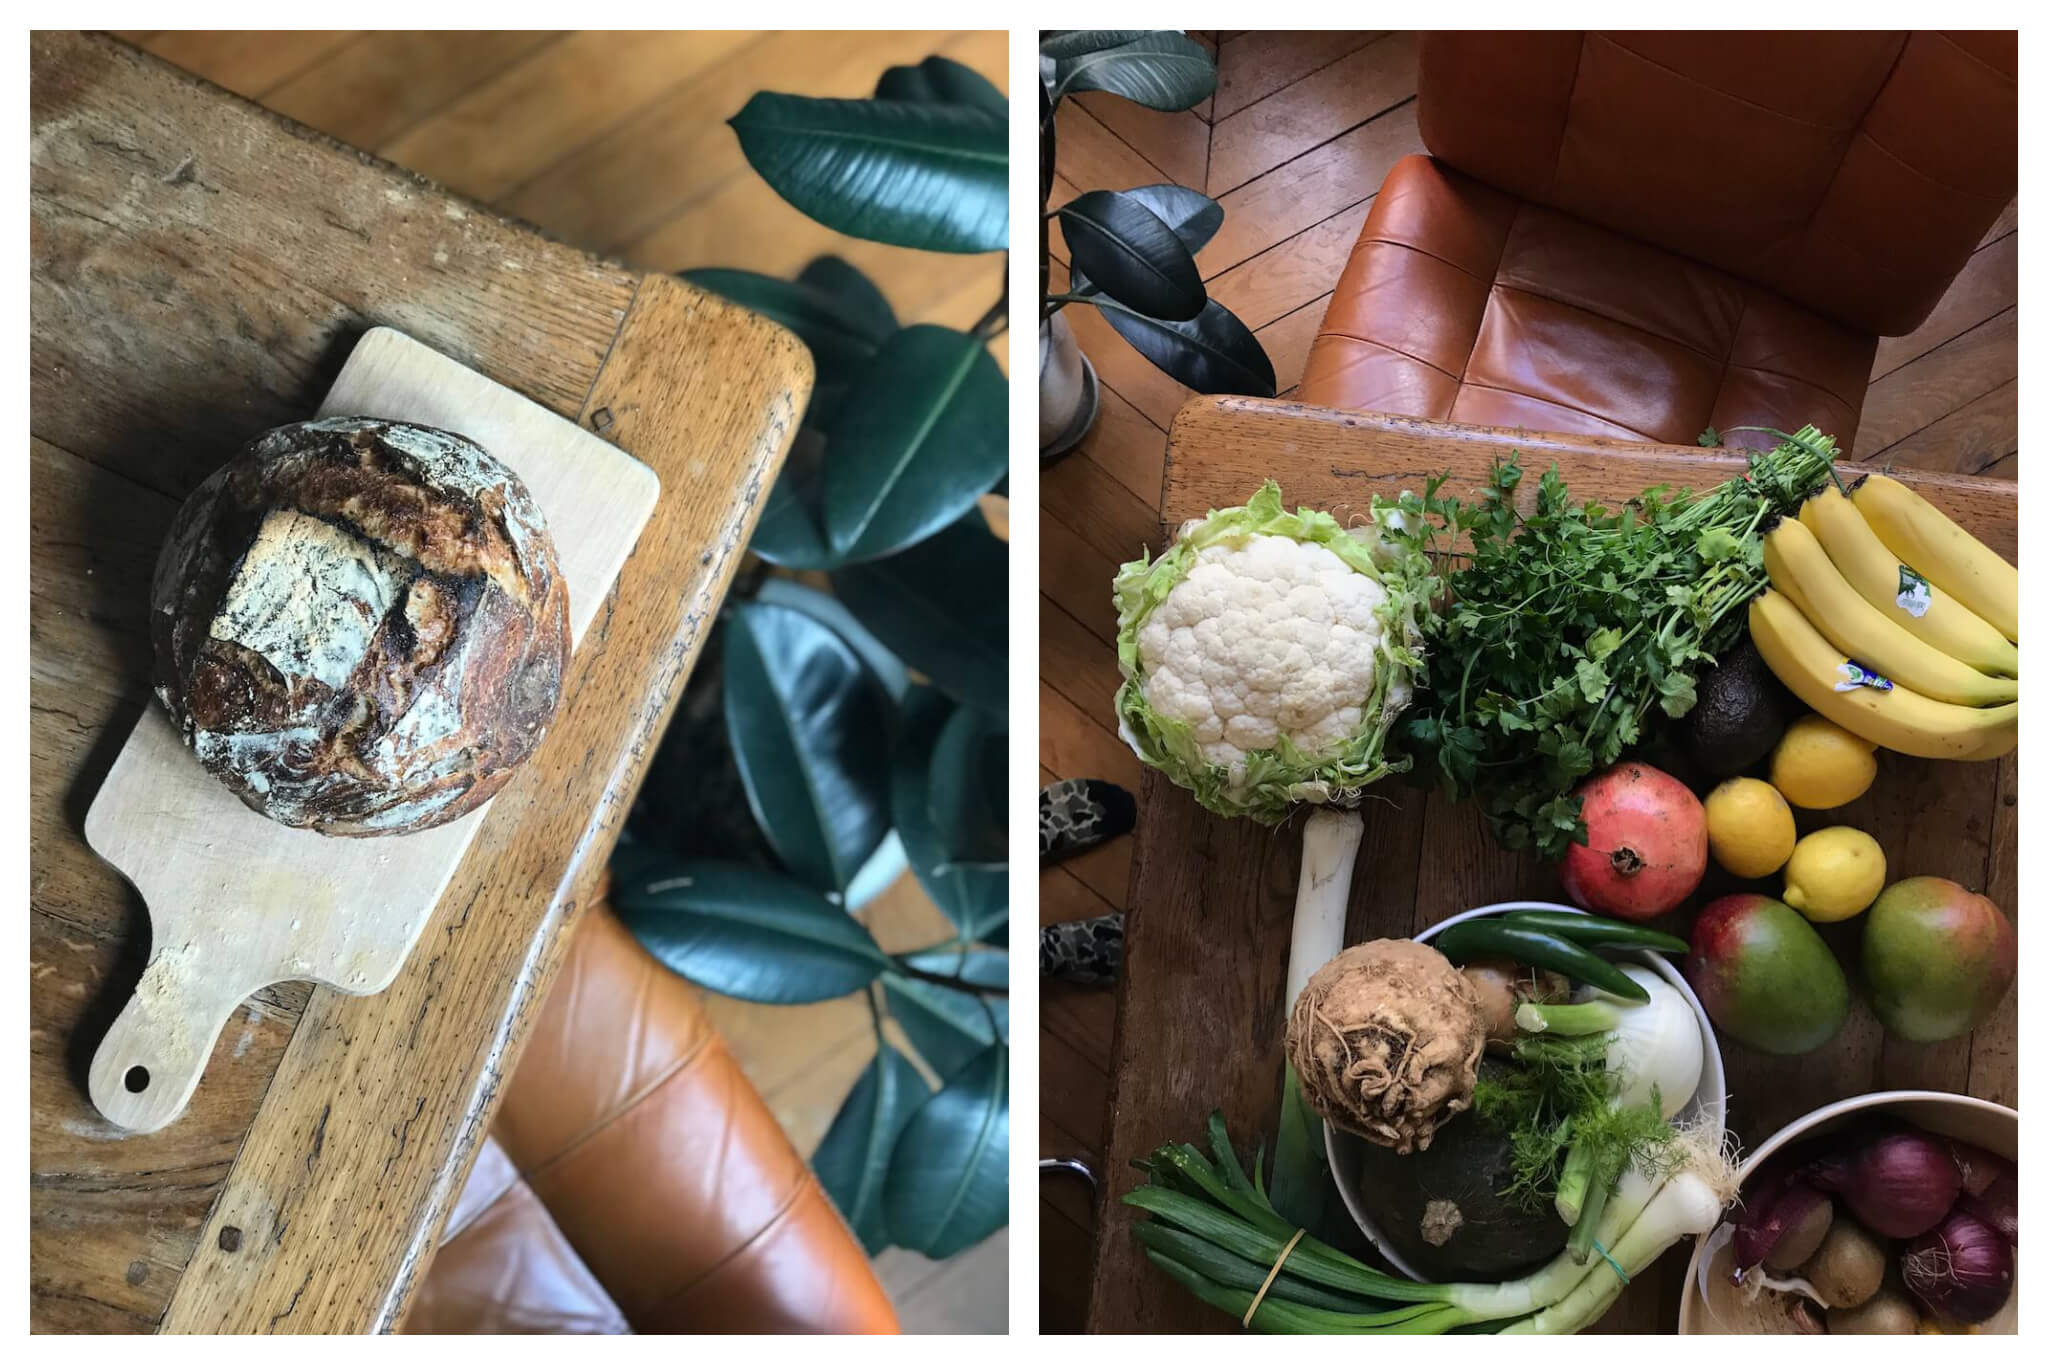 A loaf of bread and fresh produce lay on the tabletop of Erin's Paris apartment.